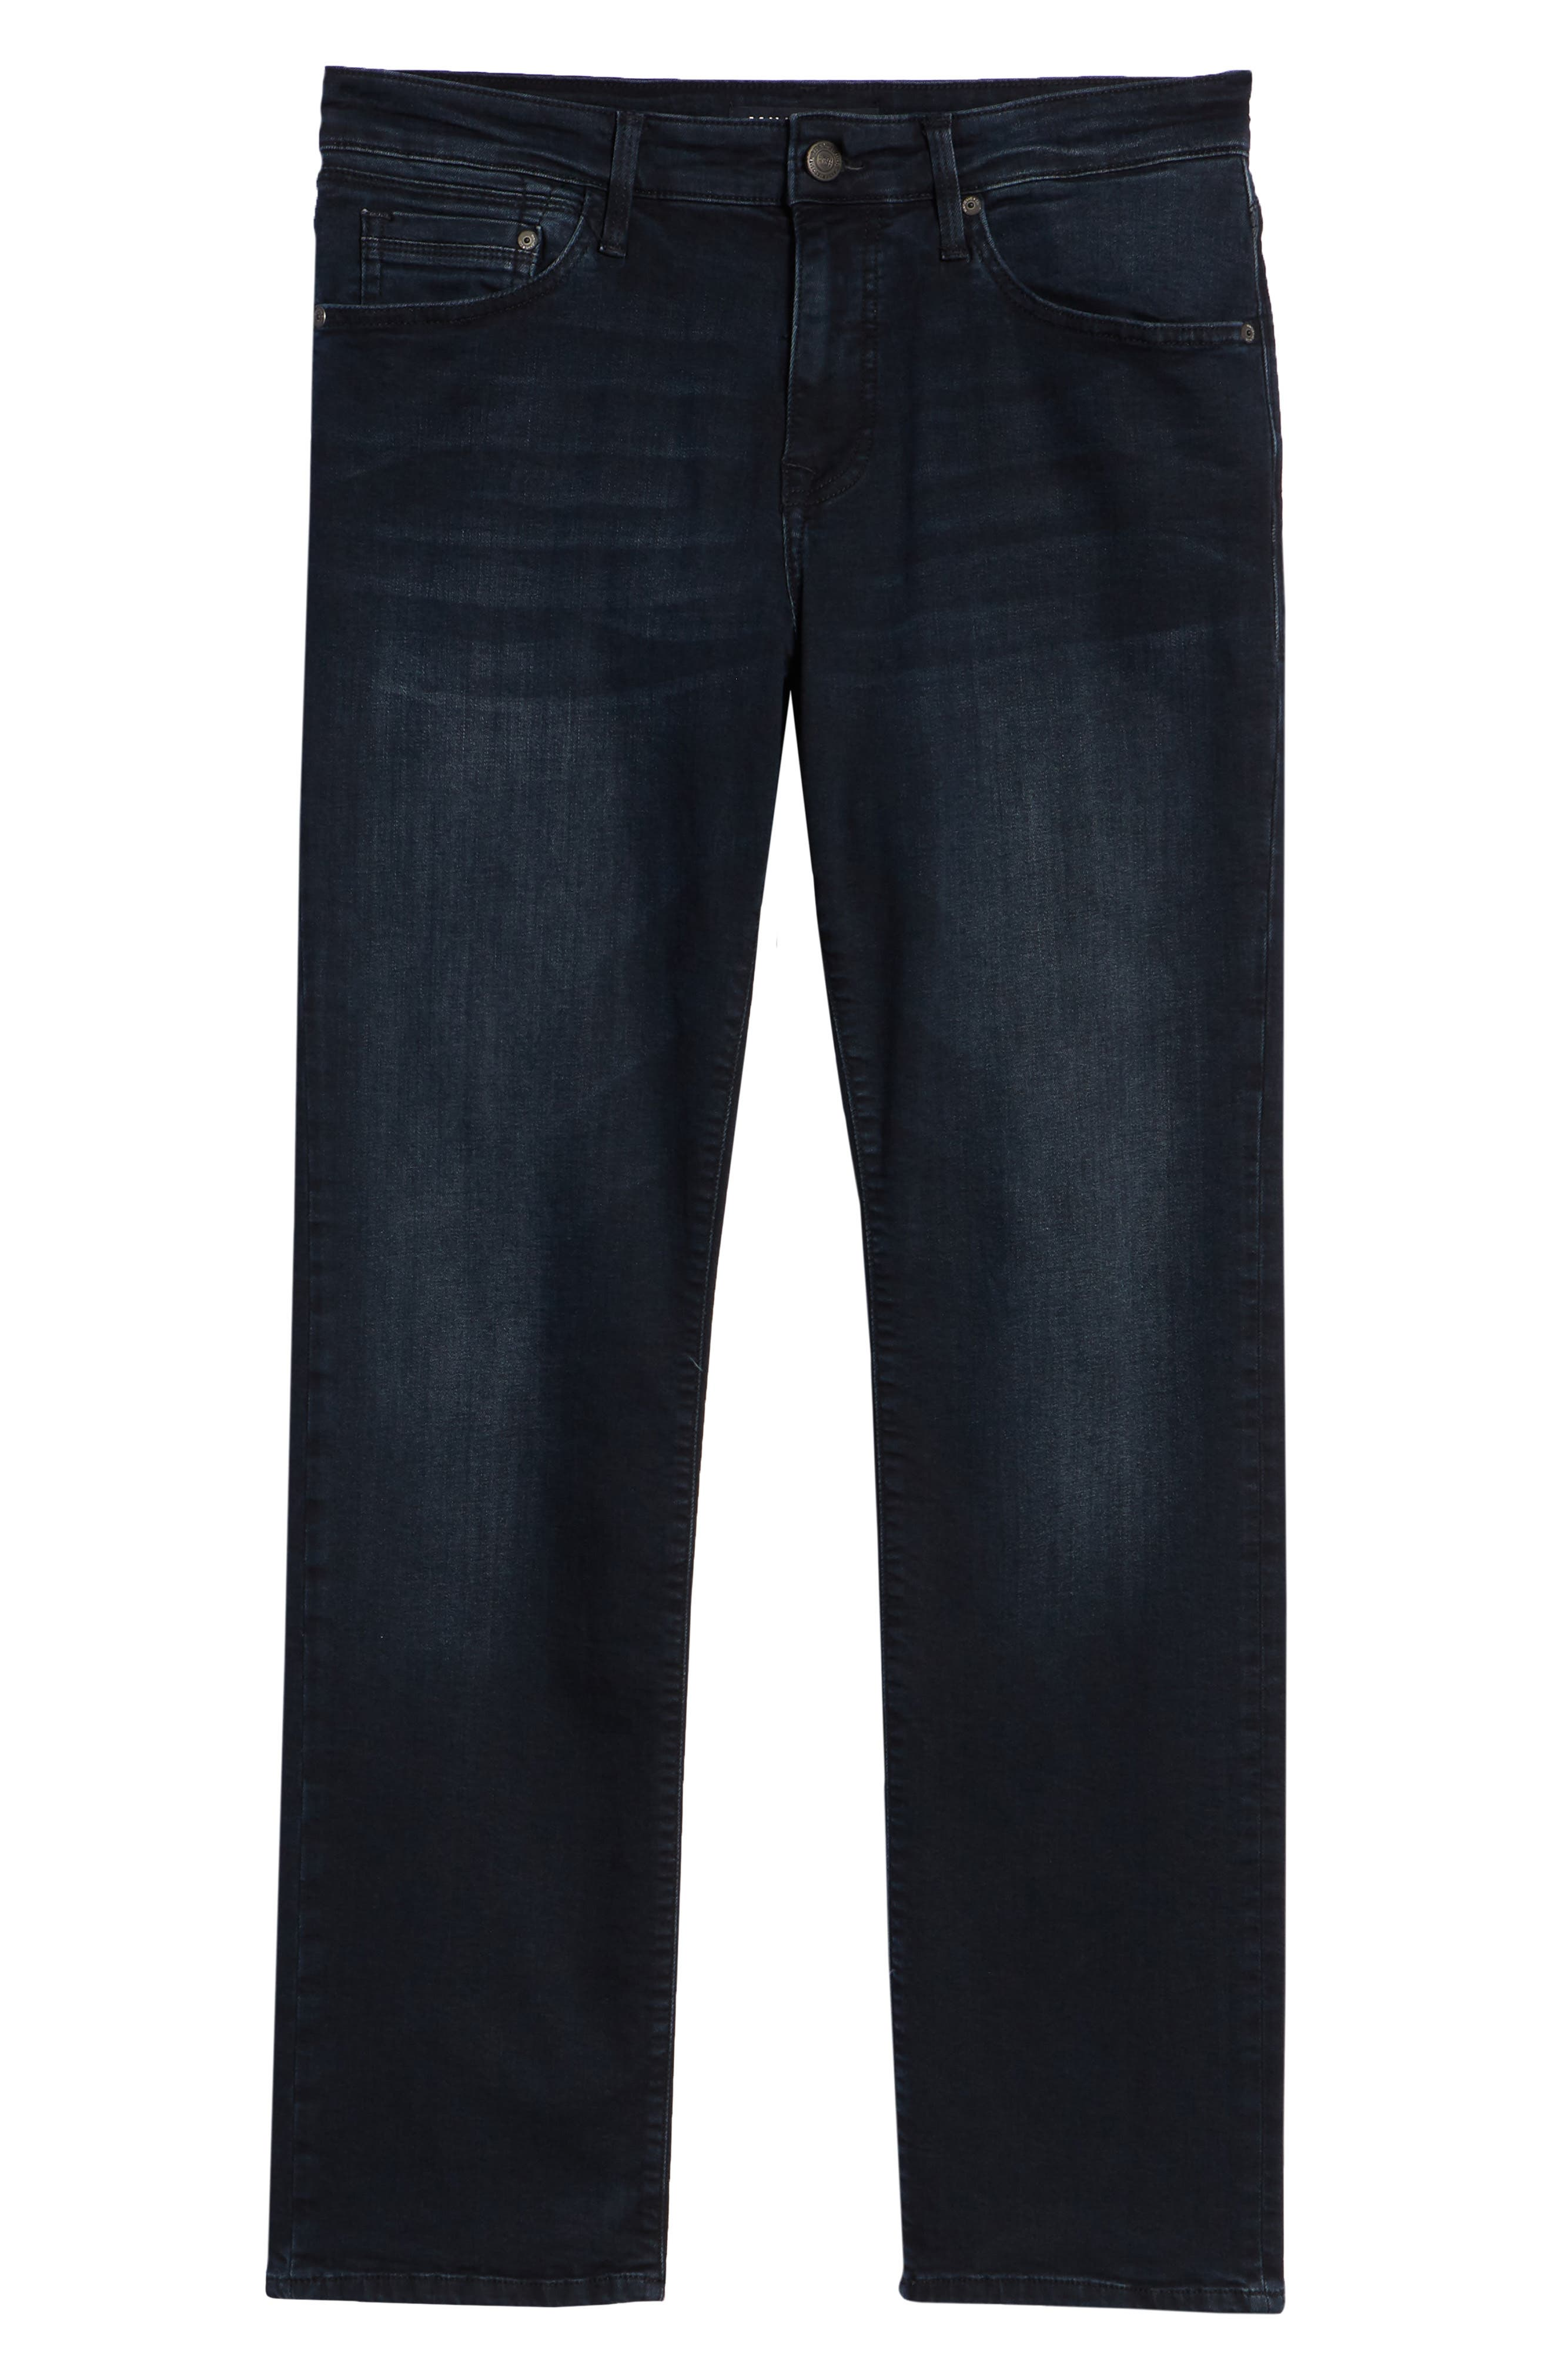 Matt Relaxed Fit Jeans,                             Alternate thumbnail 6, color,                             Ink Brushed Williamsburg